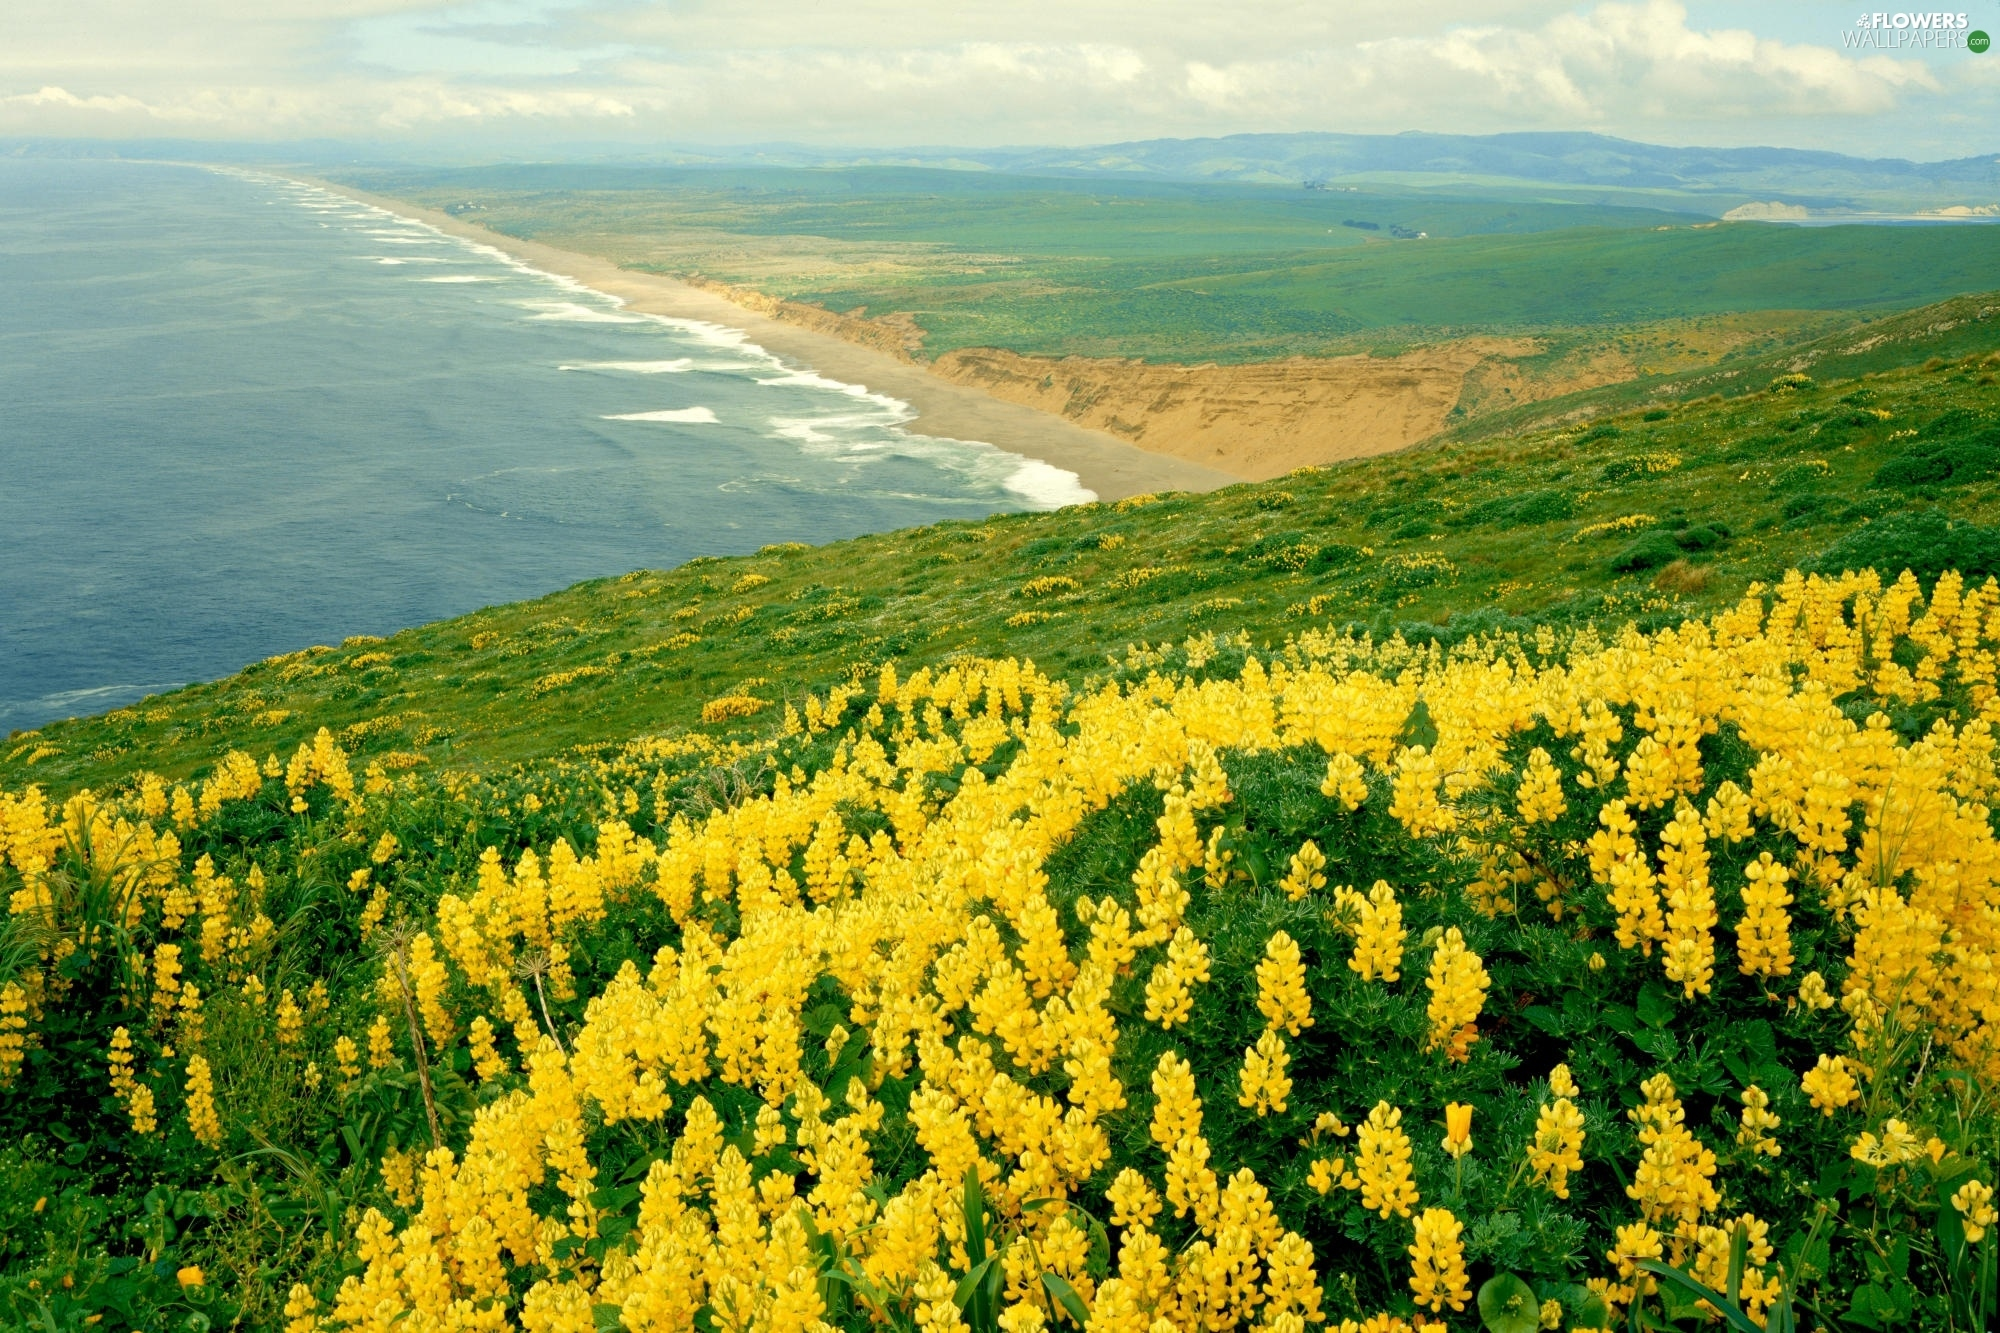 lupine yellow sea coast flowers wallpapers 2000x1333. Black Bedroom Furniture Sets. Home Design Ideas